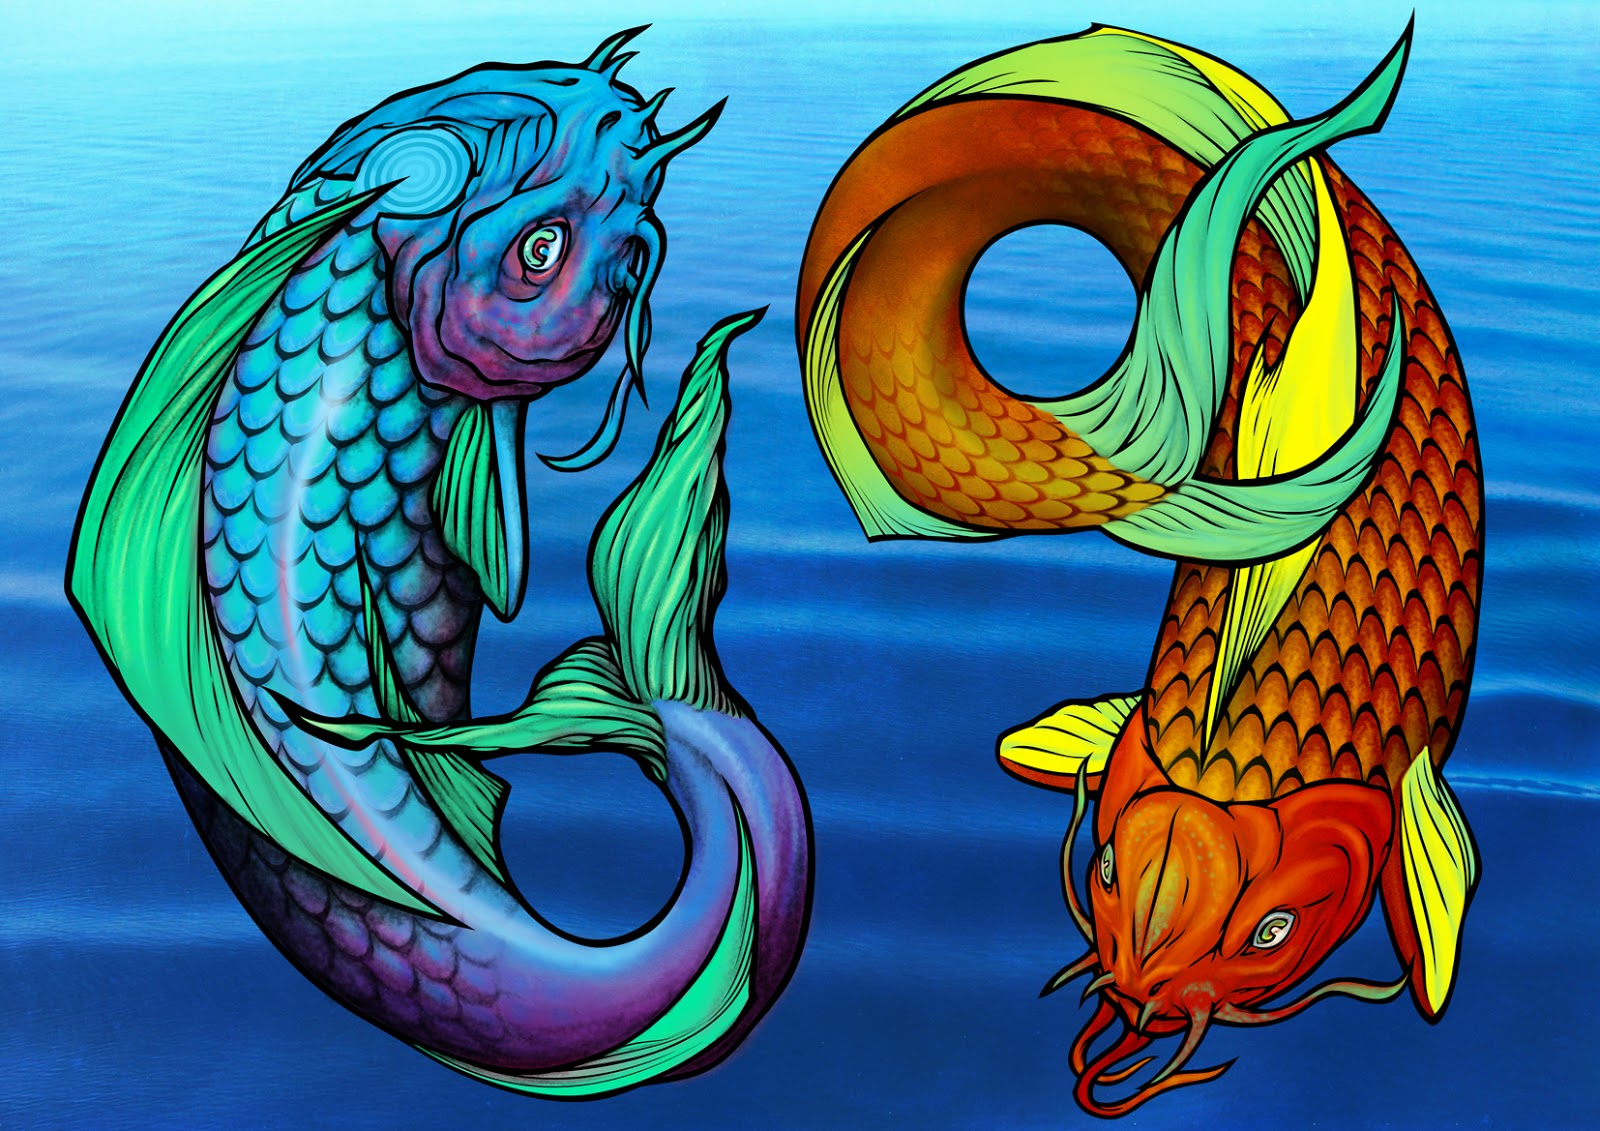 A Wolf Illustrations Blog: Koi Fish/Pisces/Ying Yang